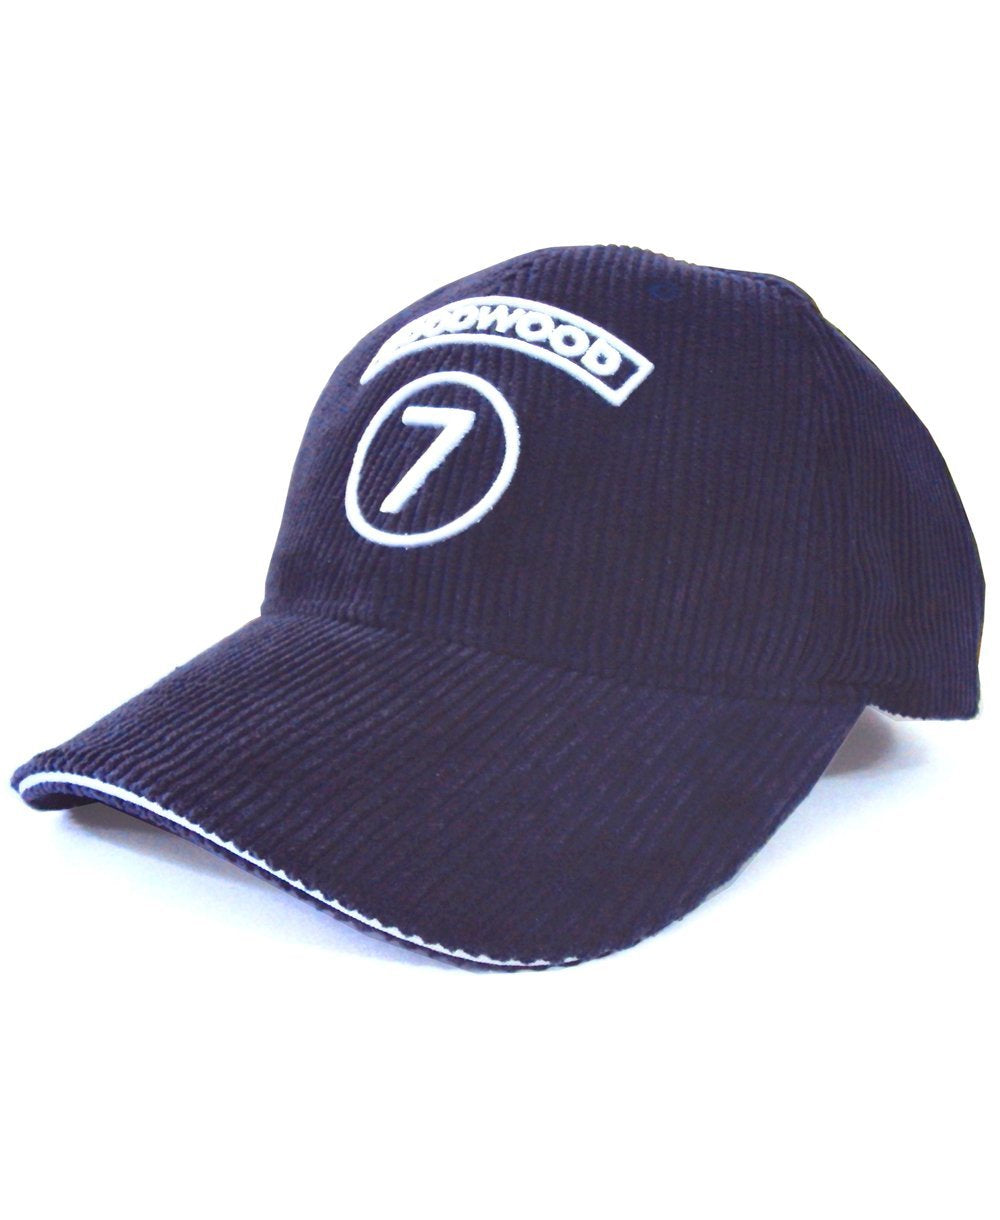 Goodwood Cotton Twill Stirling Moss Number 7 Navy Baseball Cap